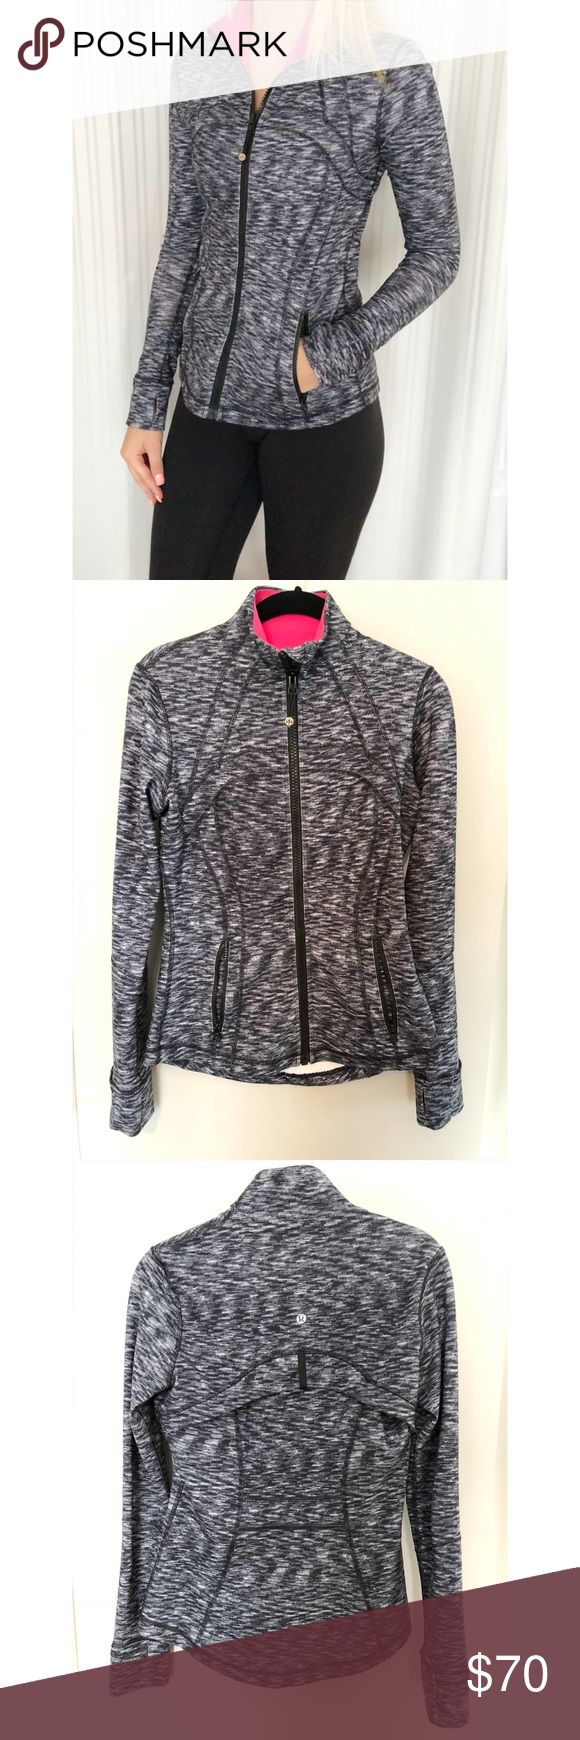 LuLuLemon Define Jacket This LuLuLemon Define Jacket is a rare color with a marled black and white with a hot pink inside color. Only worn once. lululemon athletica Tops Sweatshirts & Hoodies